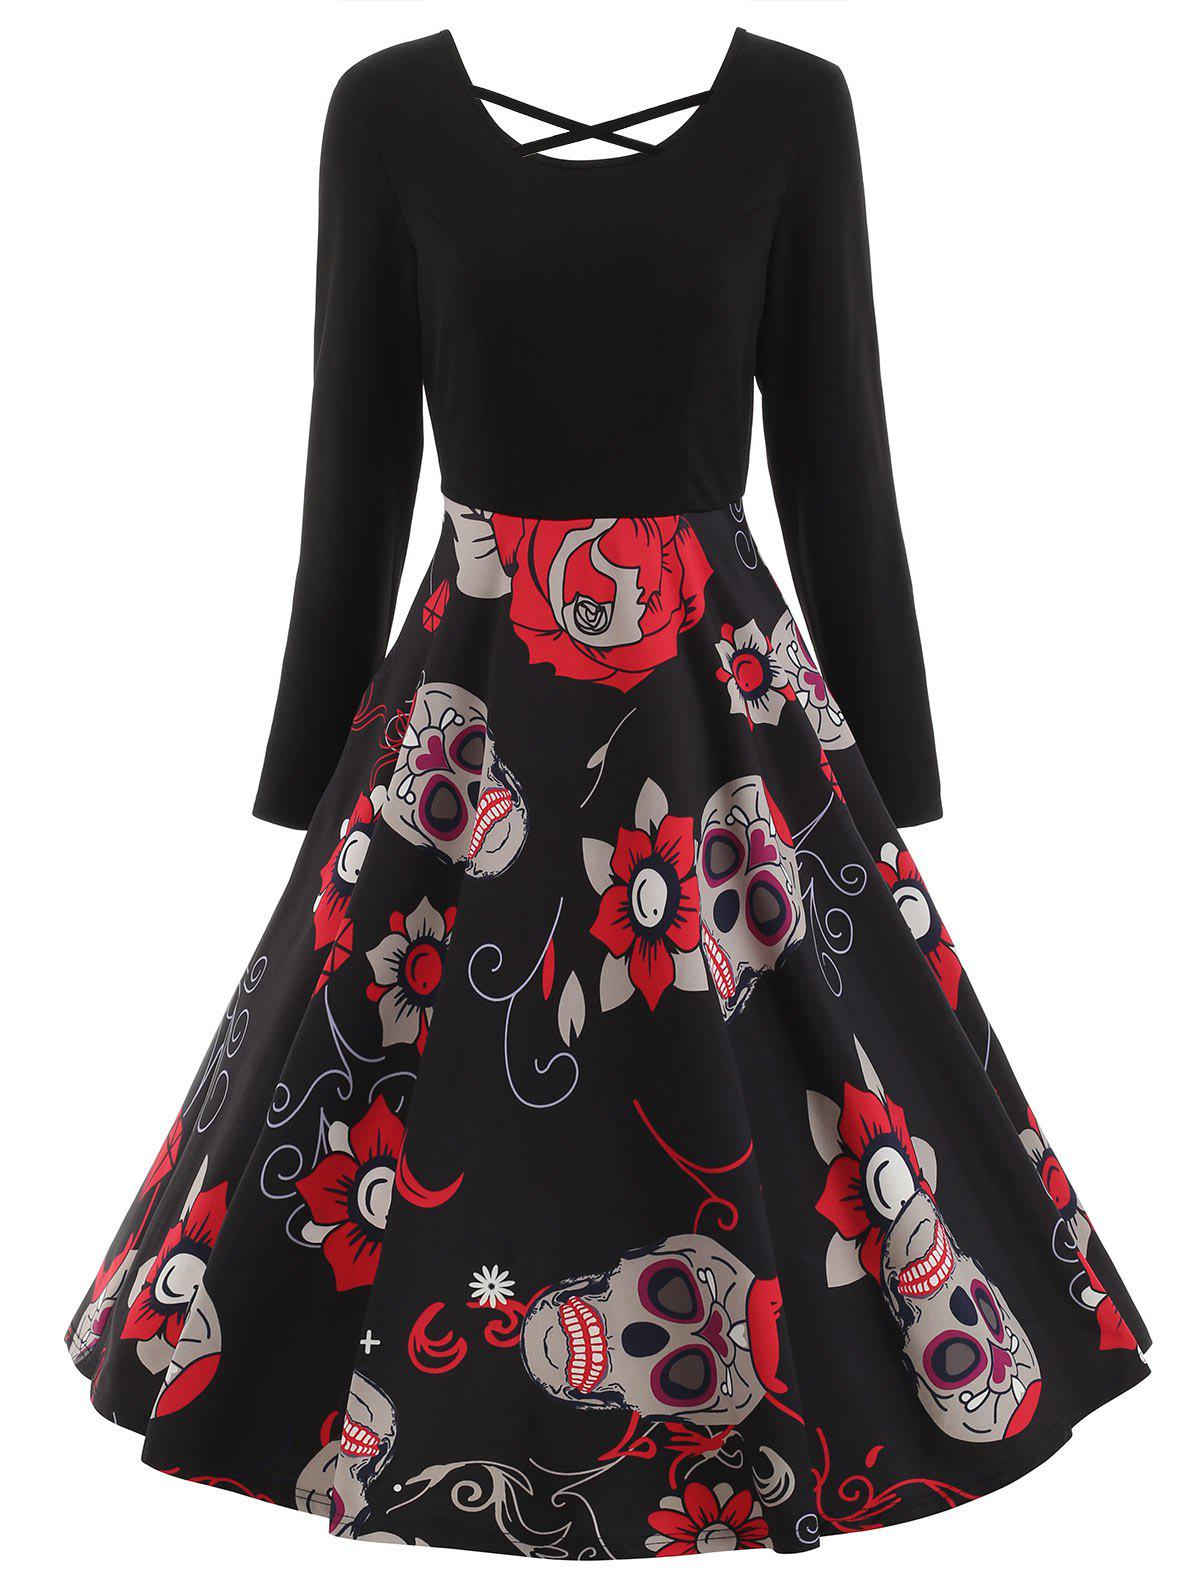 Sugar Skull Print Criss-cross Dress - BLACK L